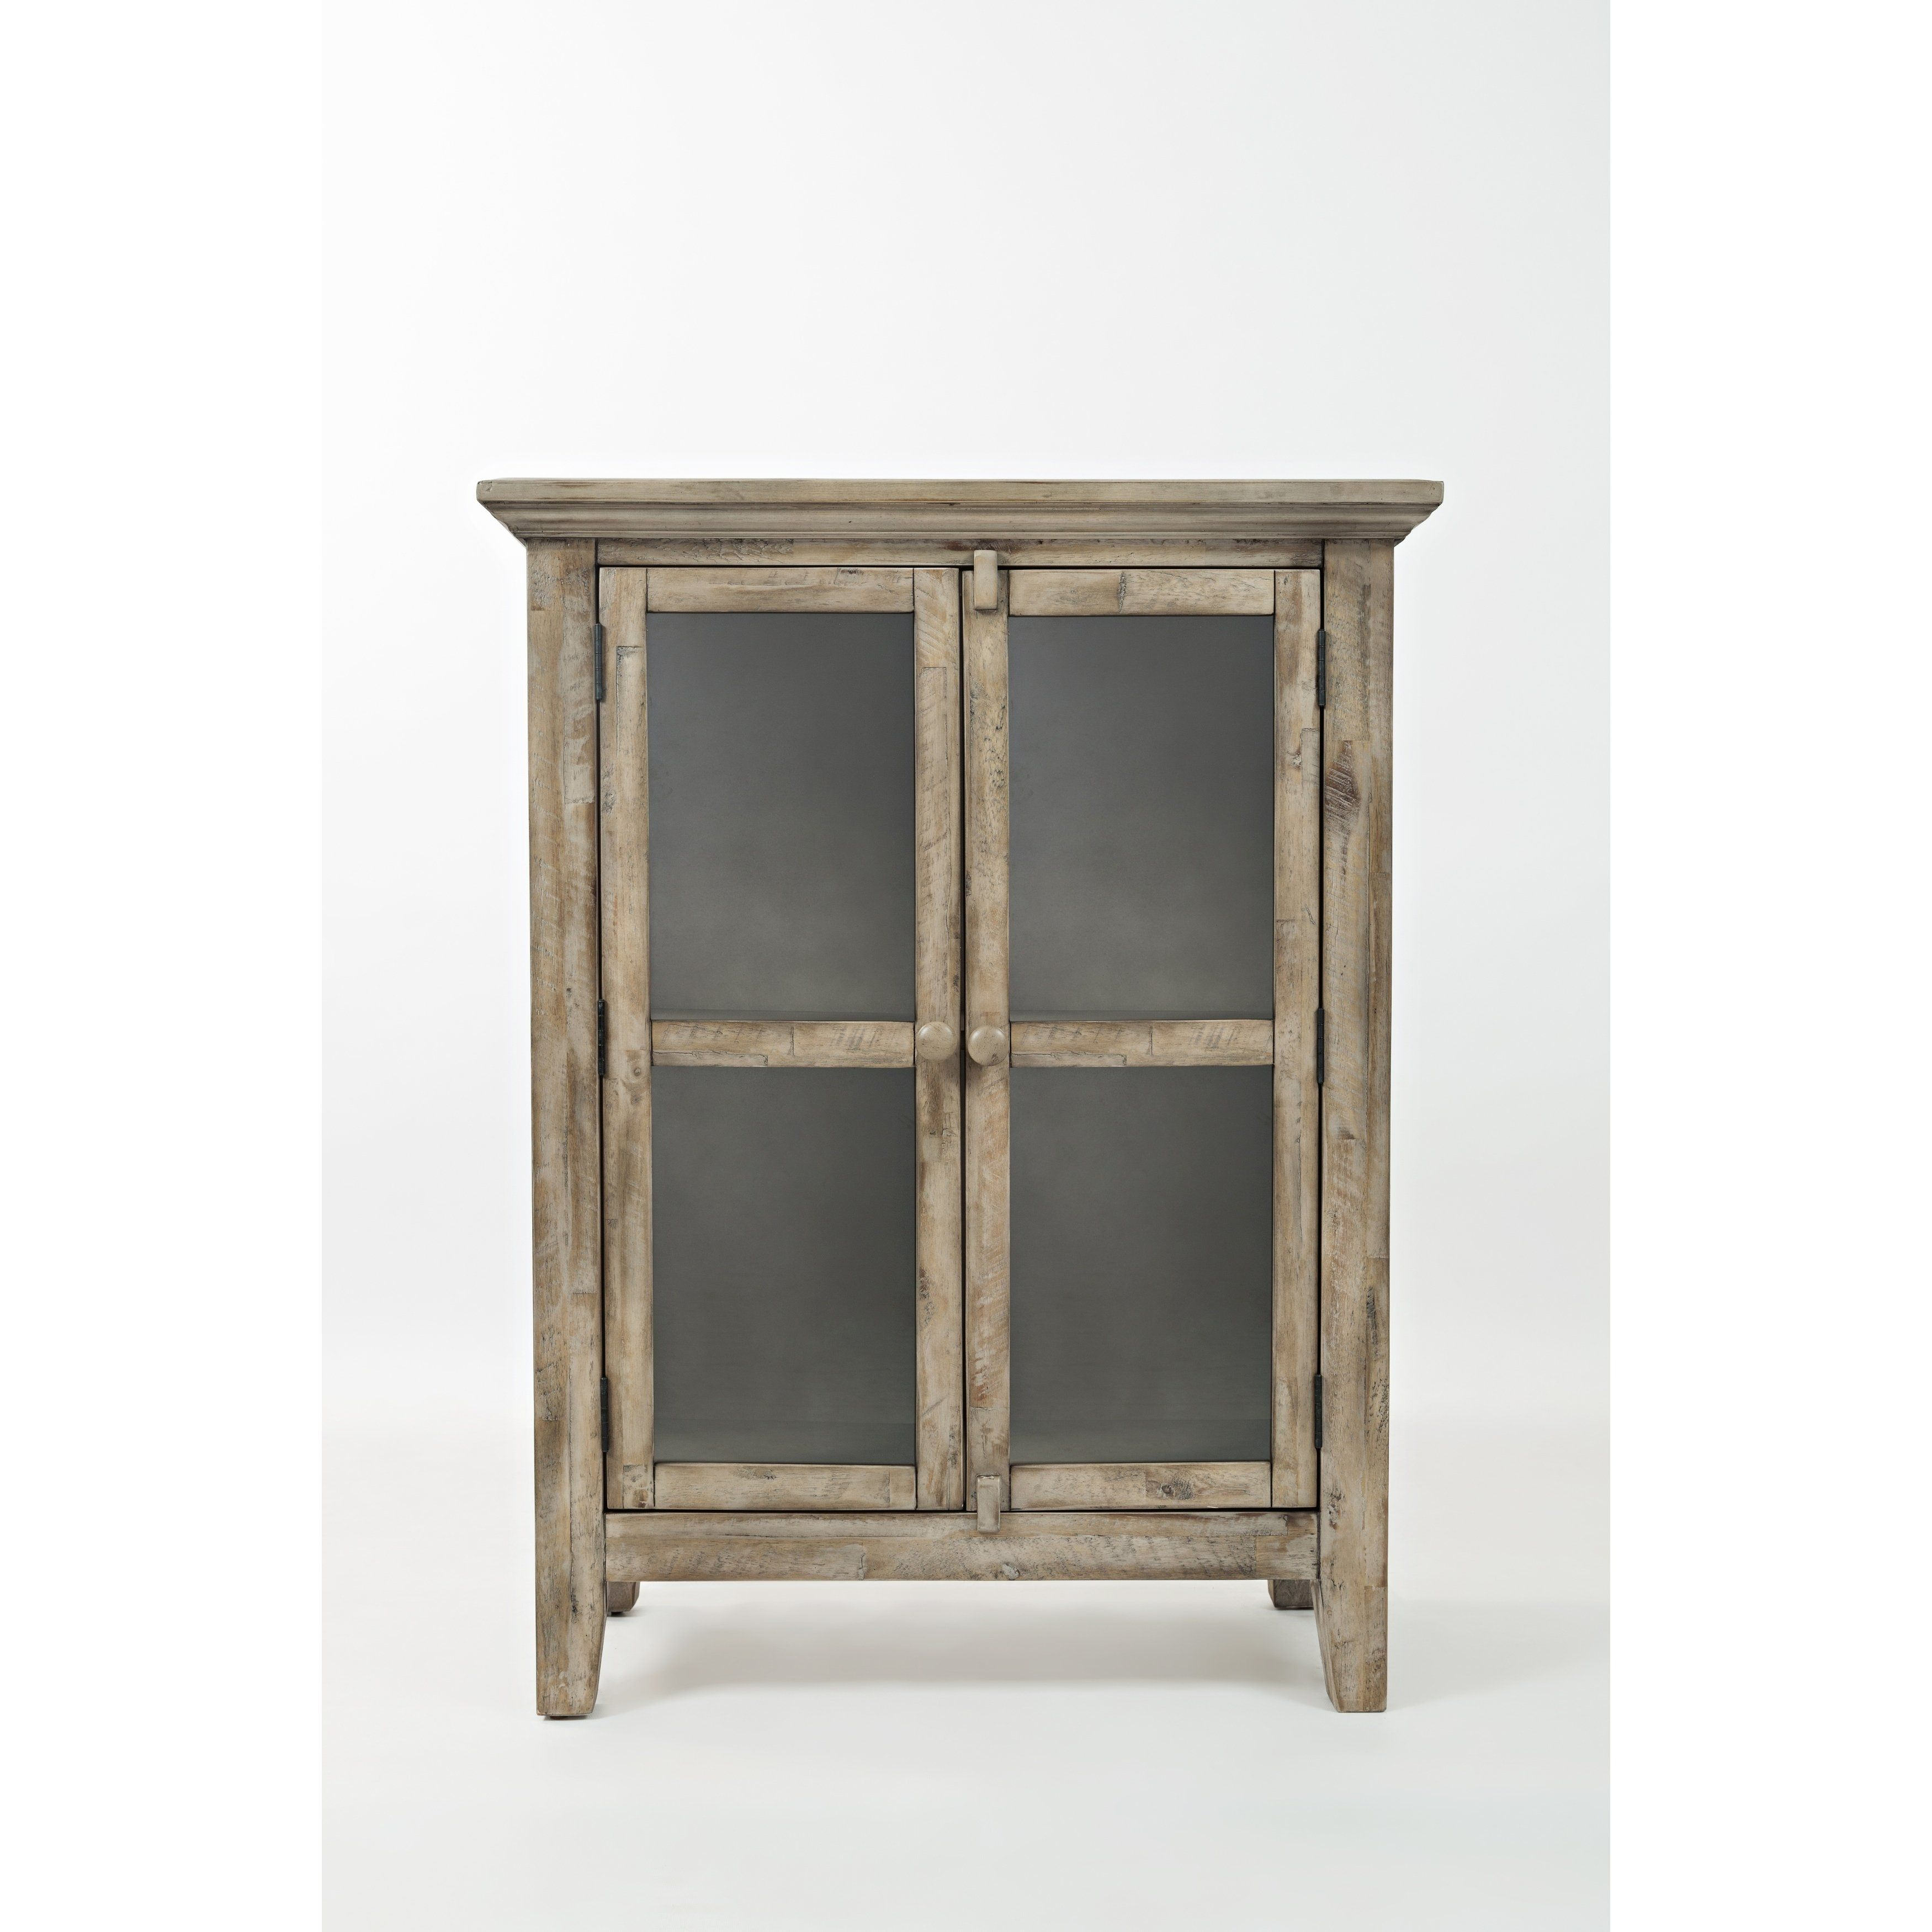 Best Wooden Accent Cabinet With 2 Glass Doors Weathered Gray 400 x 300